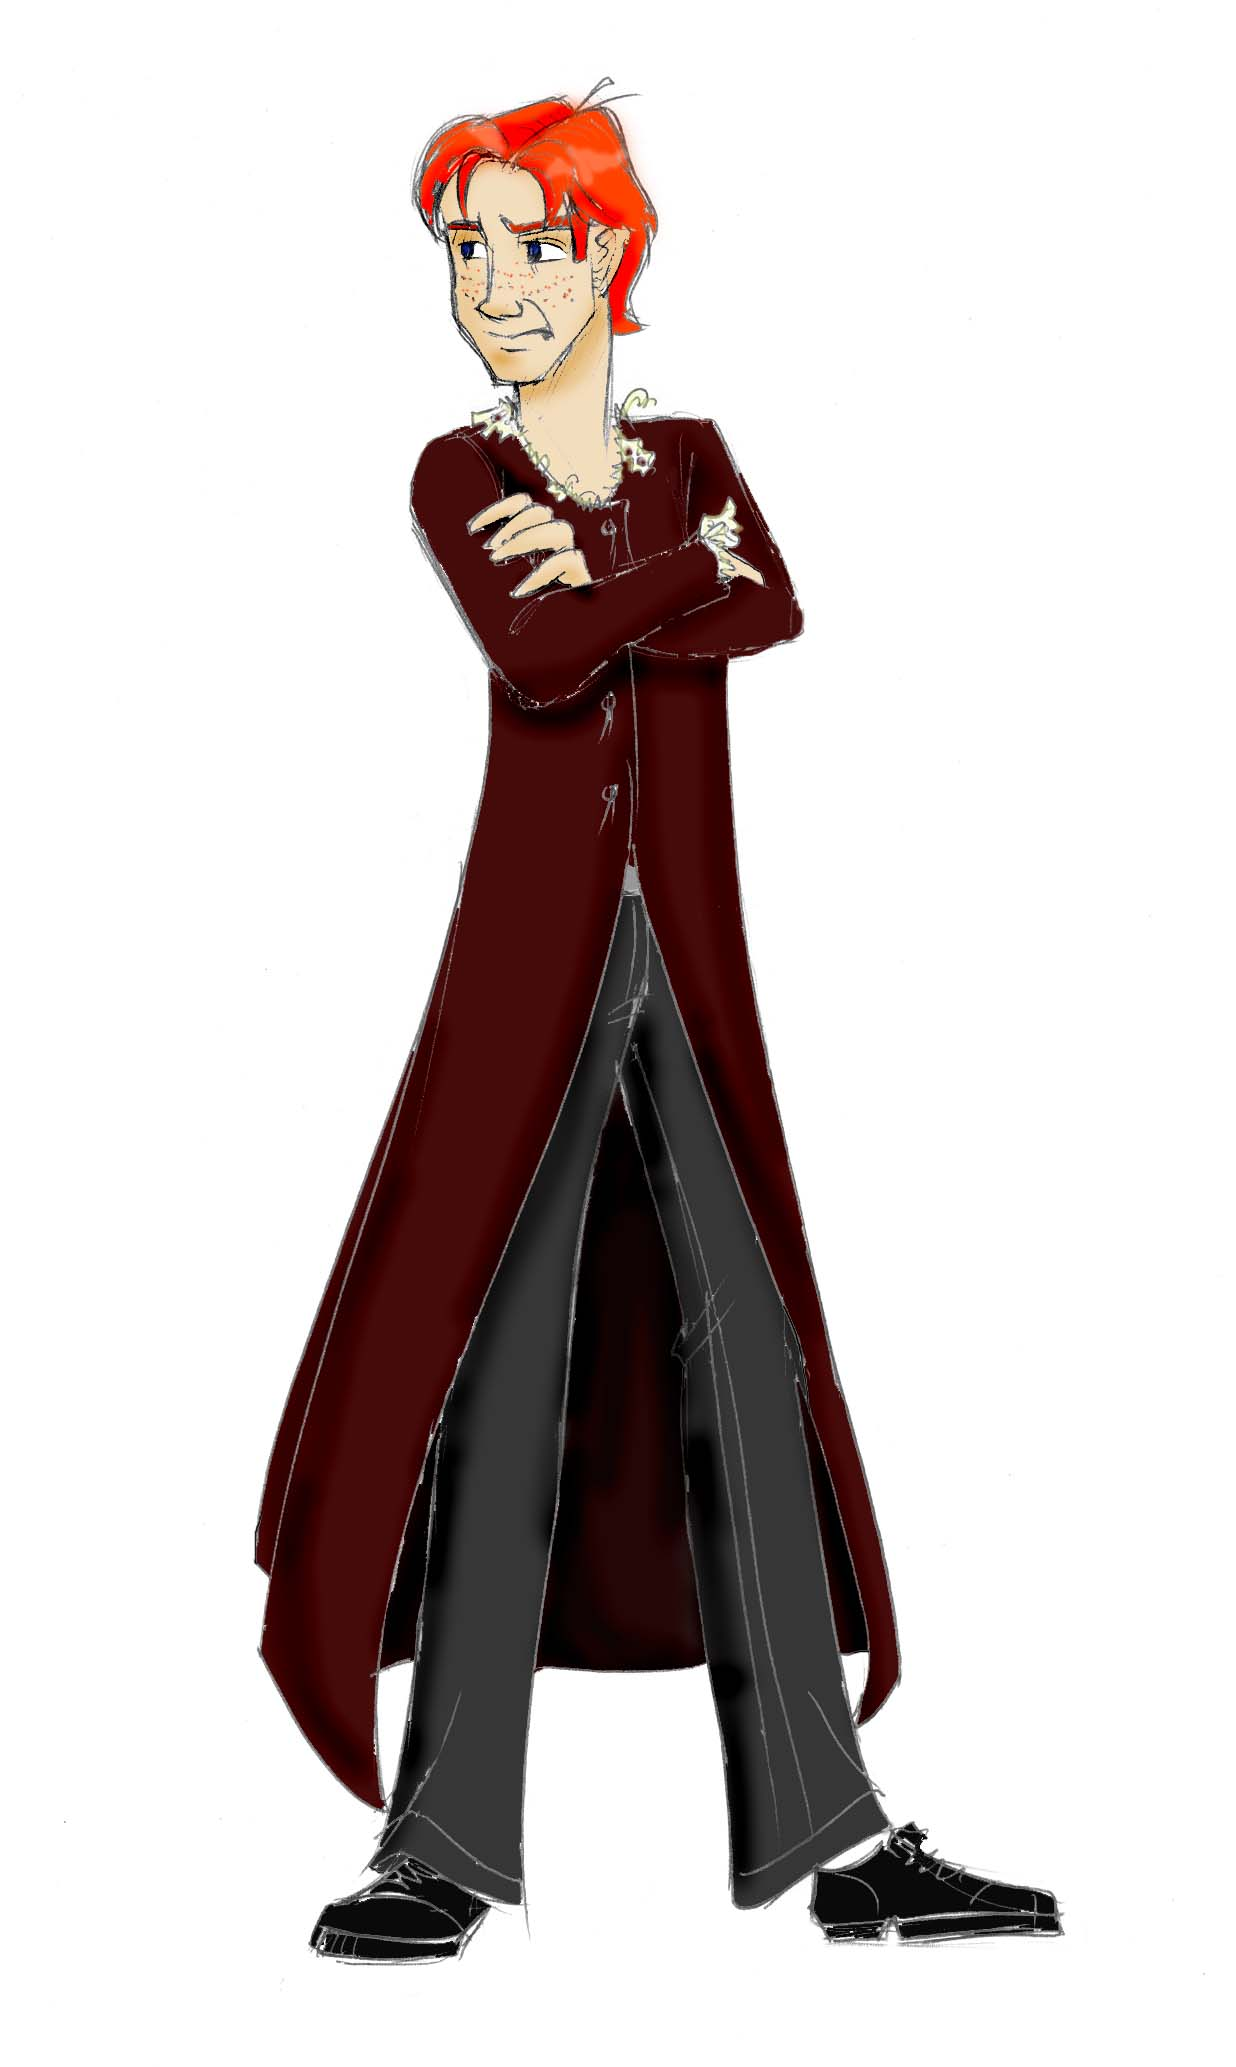 As much as Ron hates maroon, he tries to improve the situation by removing some of the lace on his dress robes...